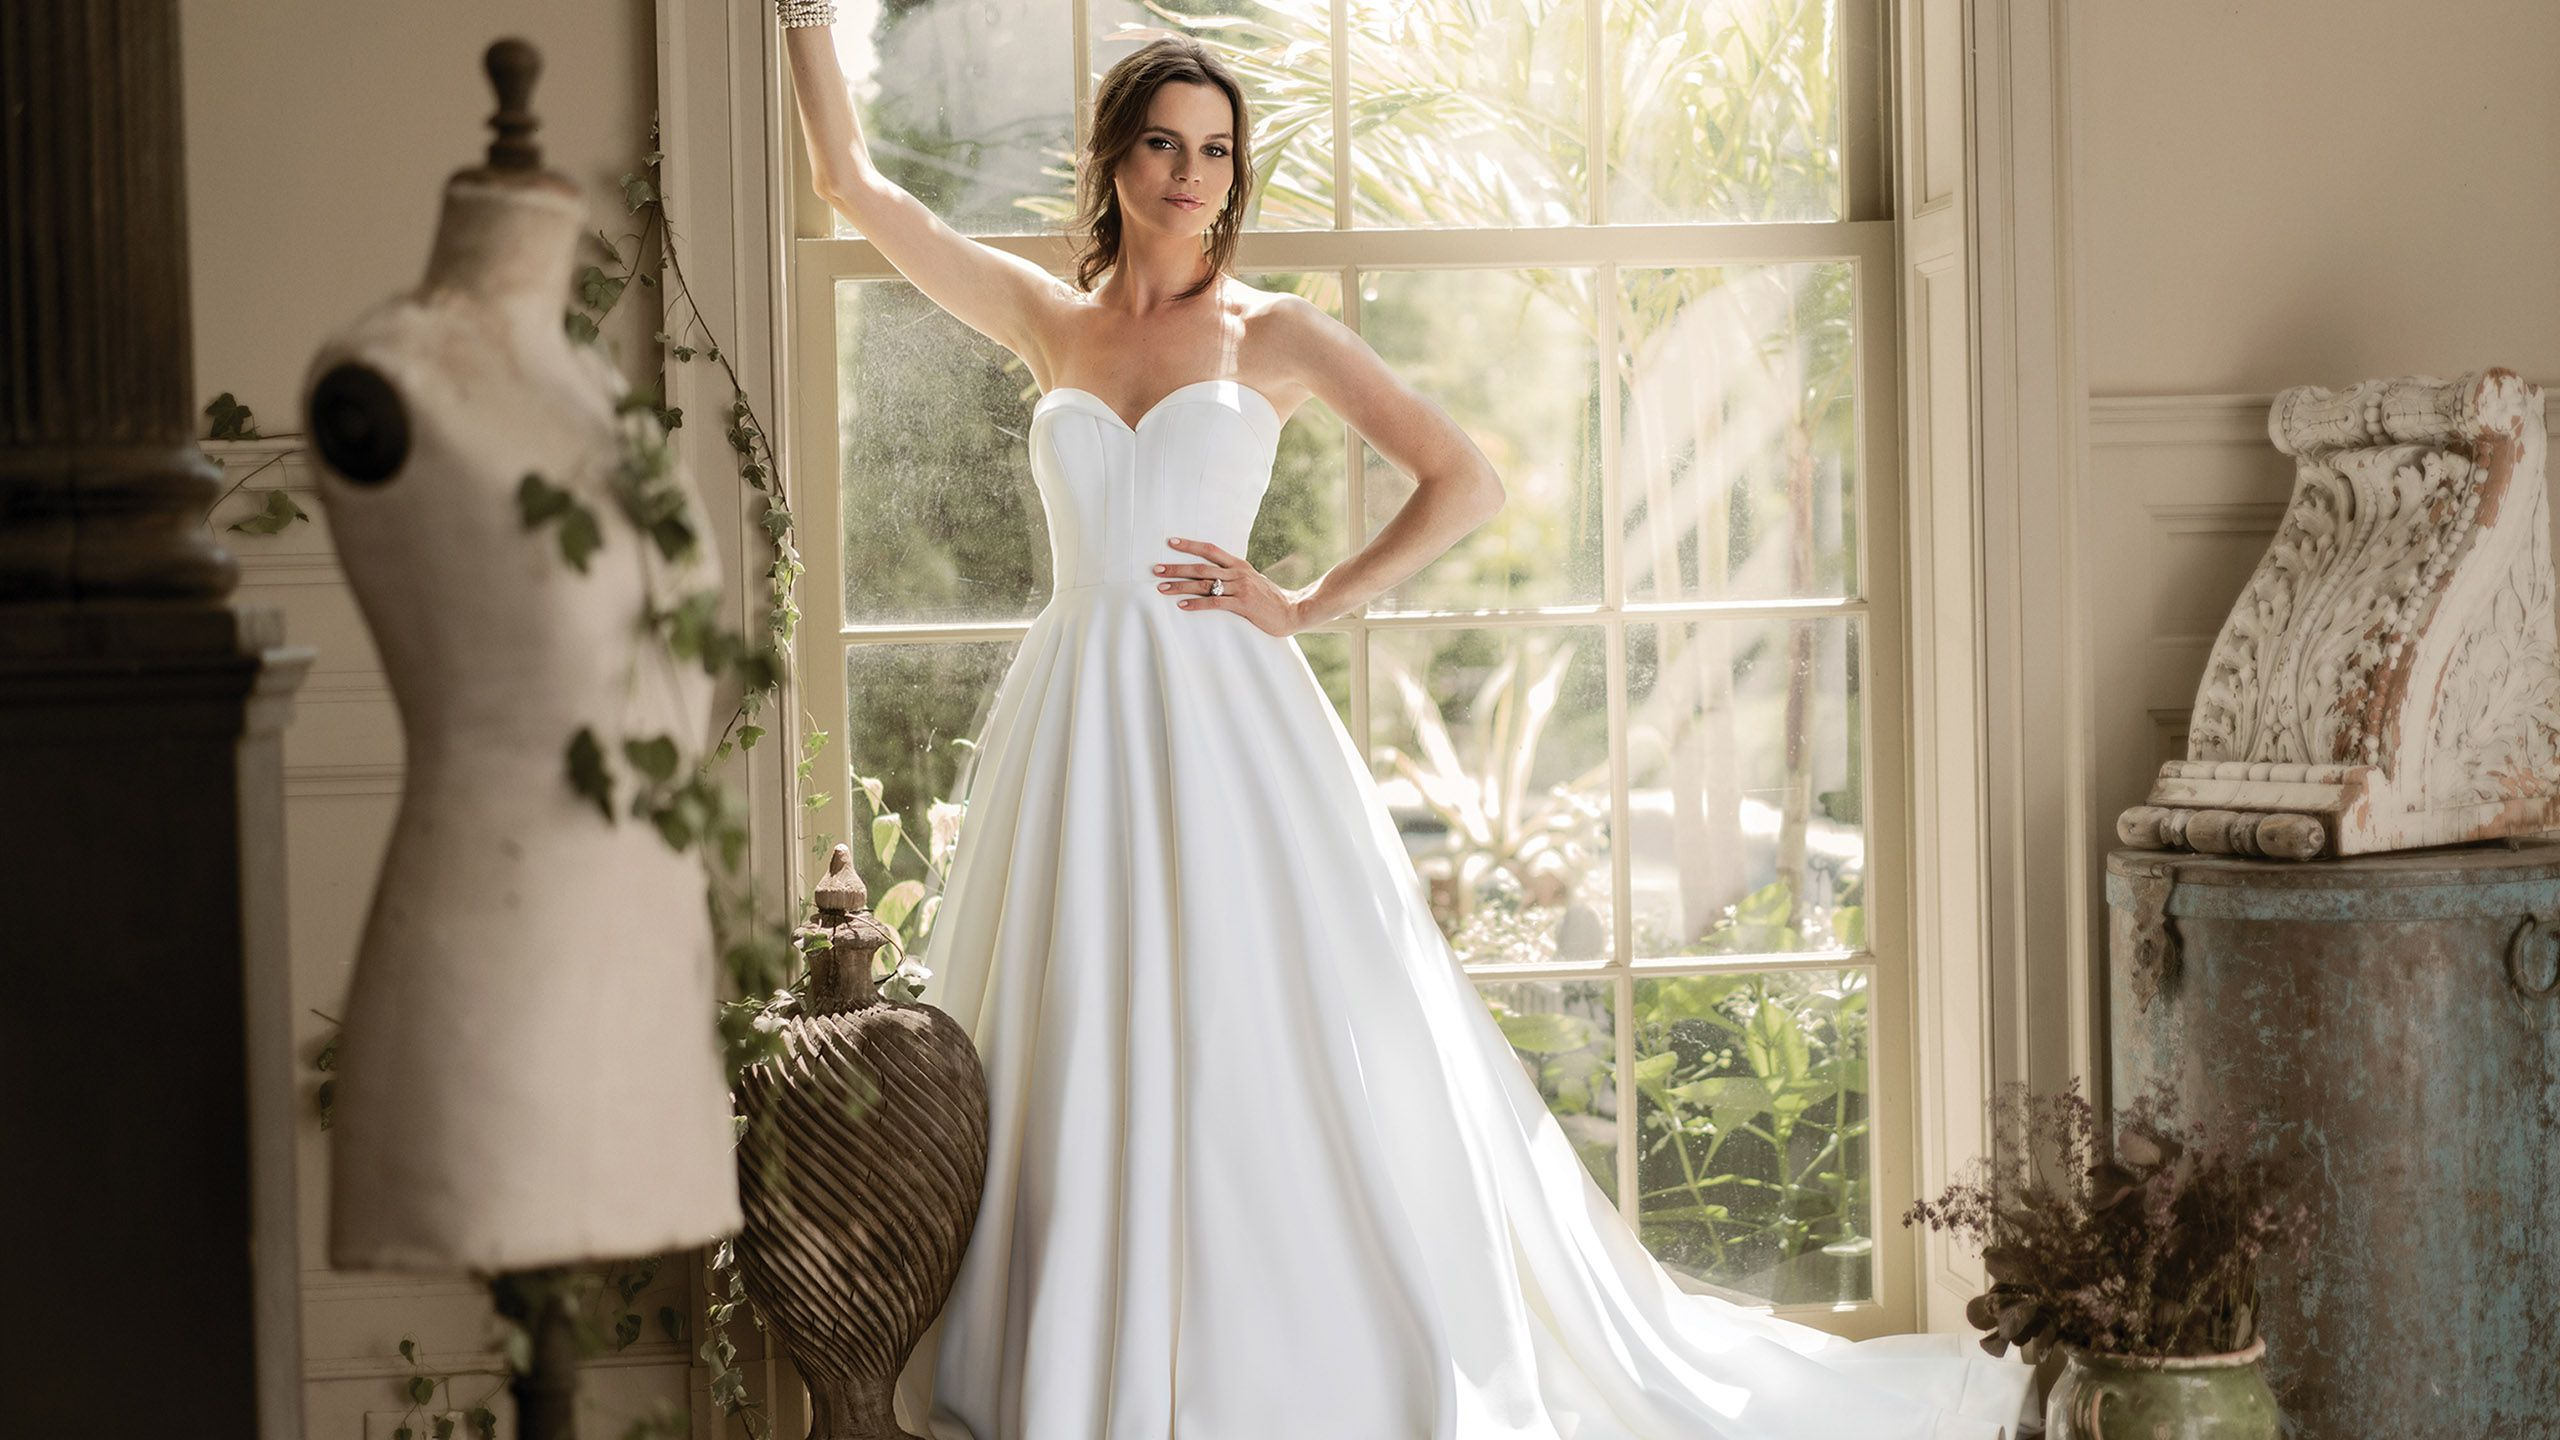 - Style 9904: Satin Ball Gown with Folded Collar Sweetheart Neckline